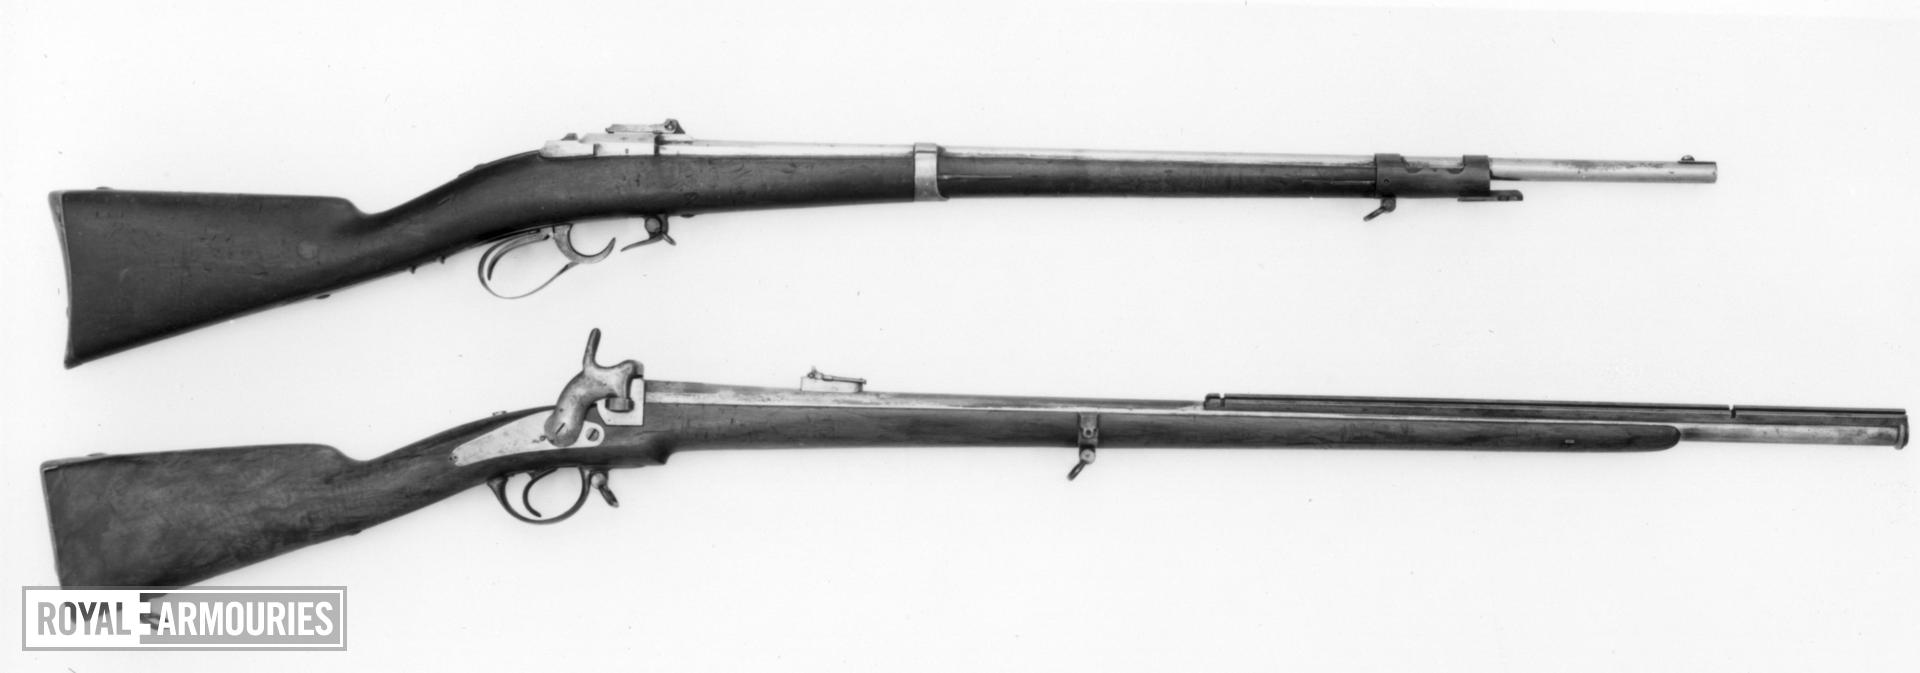 Pinfire bolt-action military rifle - Model 1858